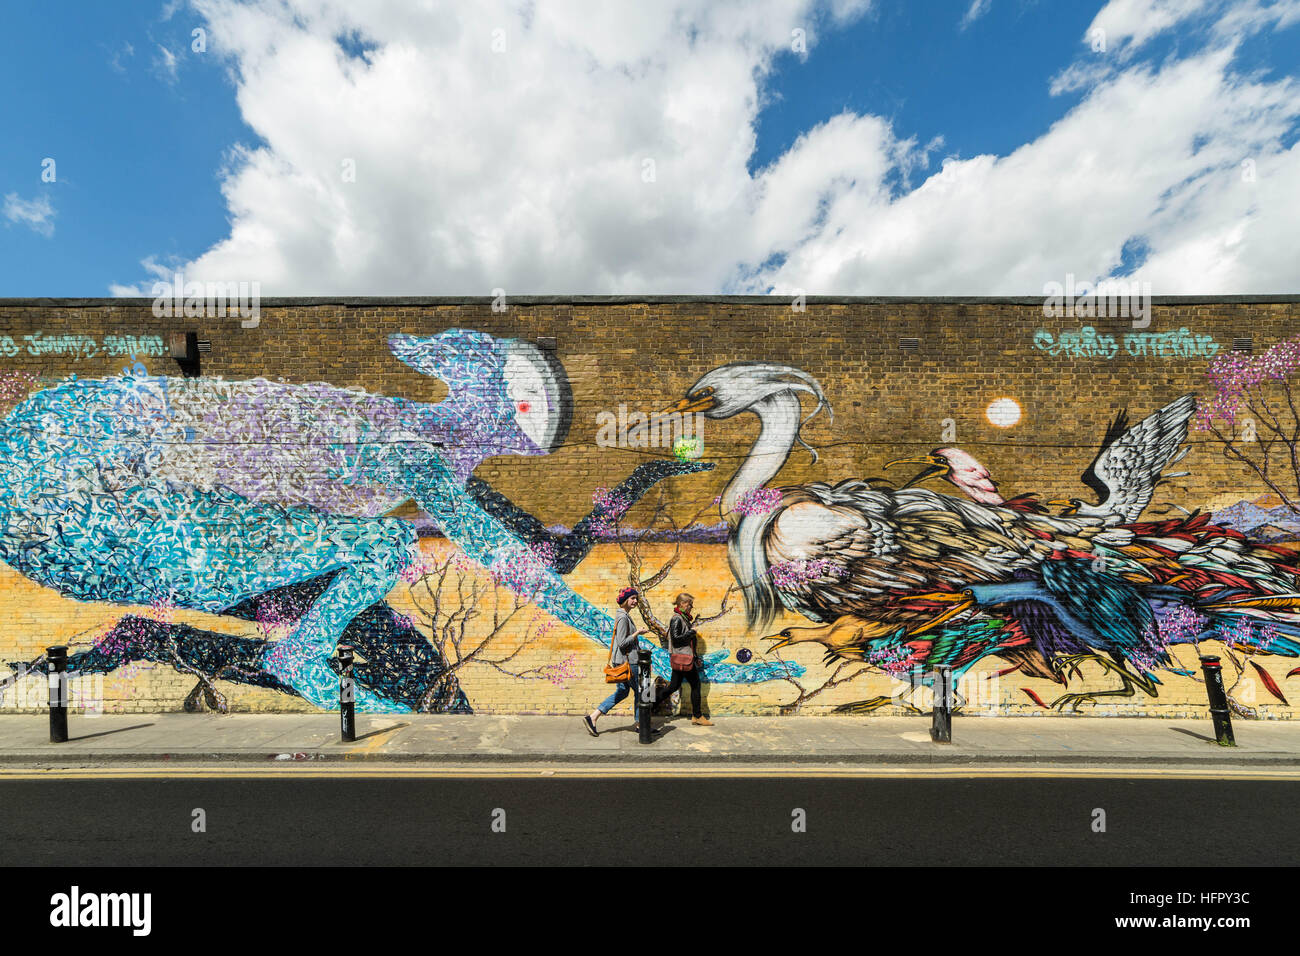 Shoreditch and Brick Lane creative graffiti and social art in east London, UK Stock Photo